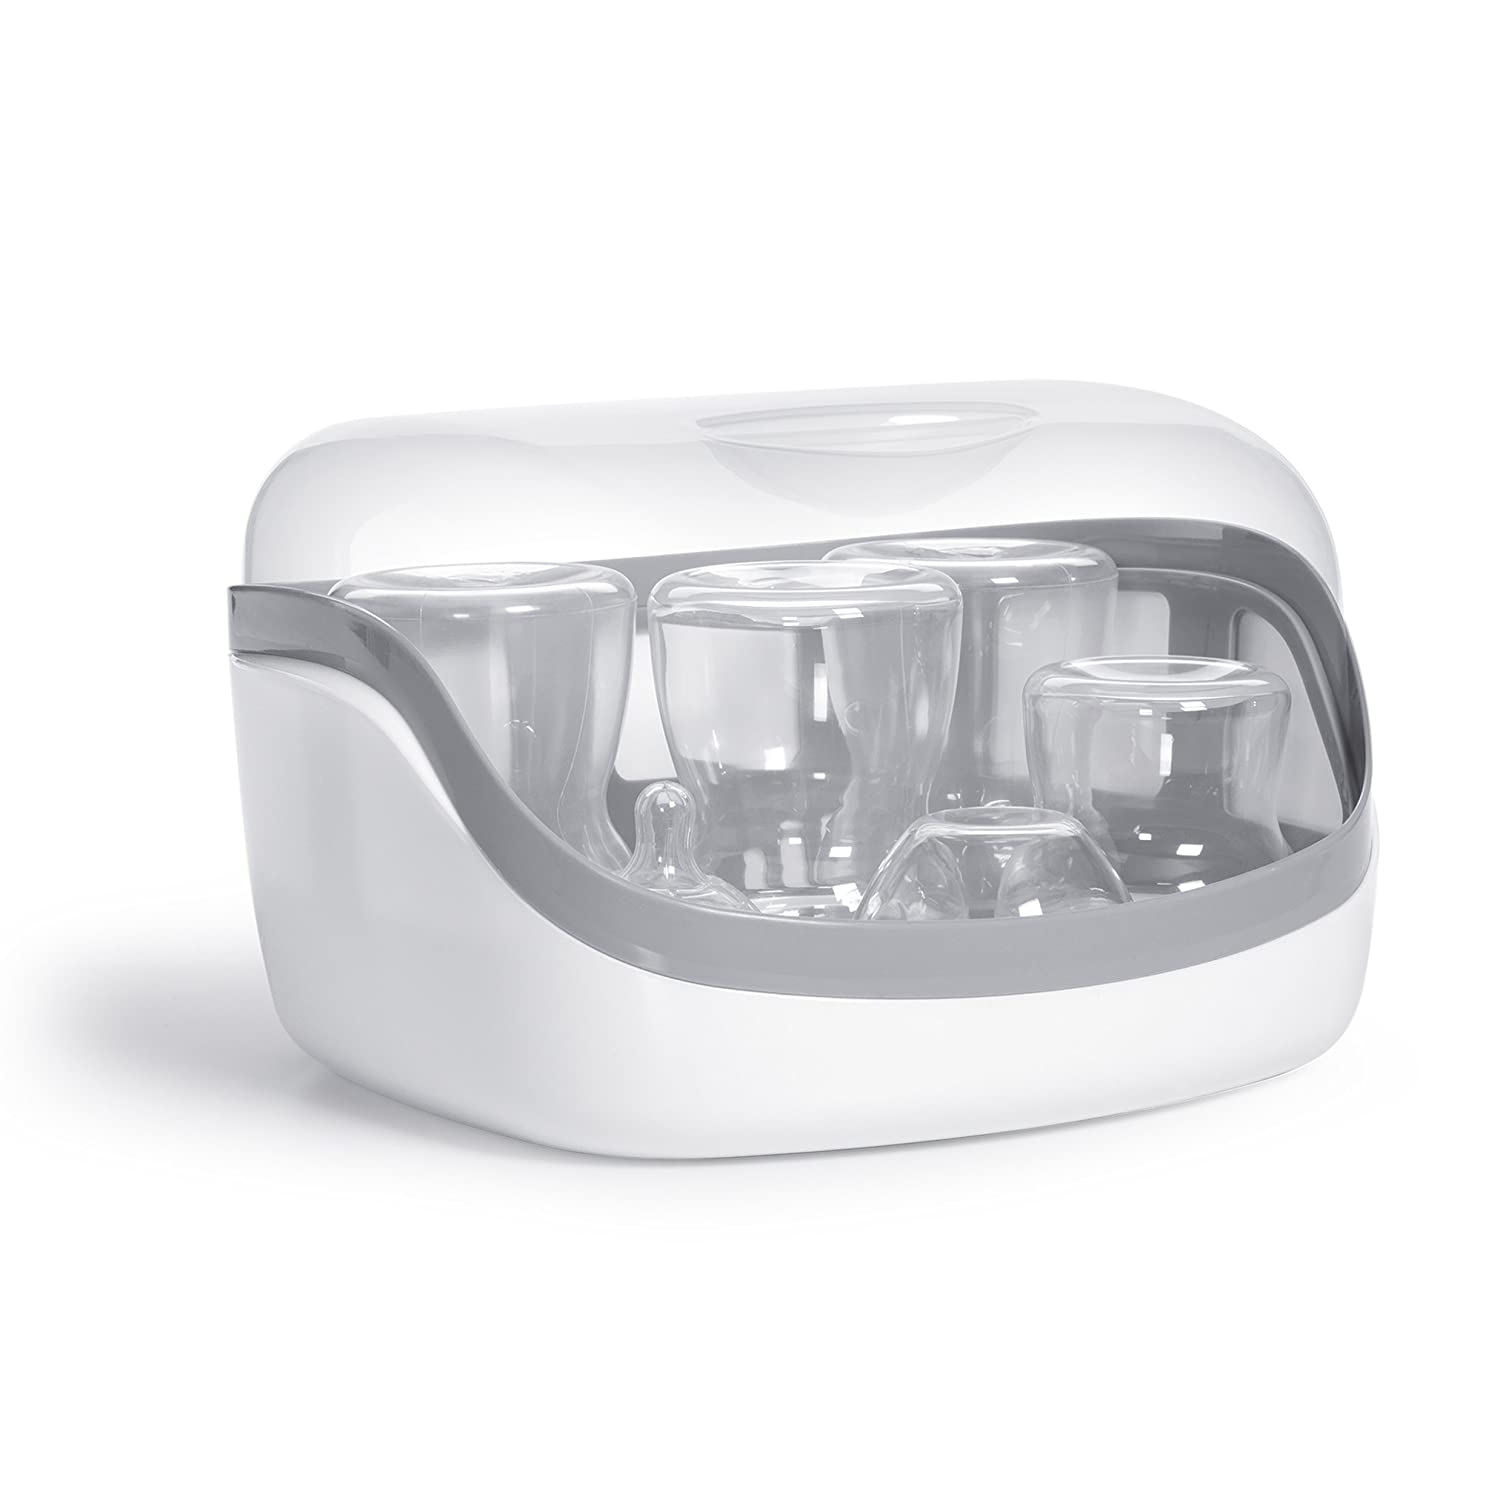 Microwave Steam Sterilizer - eliminates 99.9% of Harmful Bacteria Quickly and Naturally with The Power of steam, White/Grey